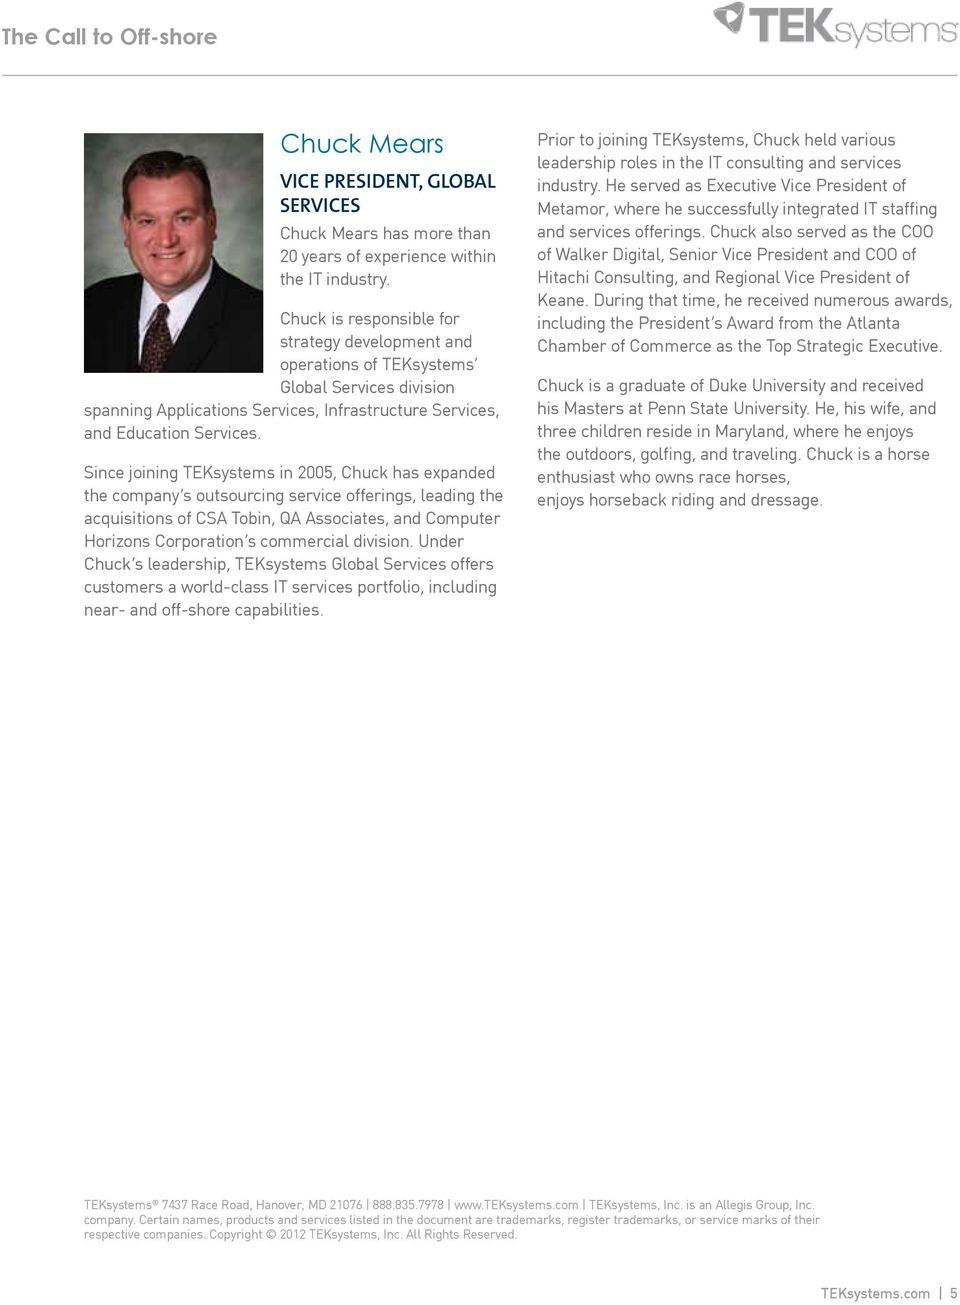 Since joining TEKsystems in 2005, Chuck has expanded the company s outsourcing service offerings, leading the acquisitions of CSA Tobin, QA Associates, and Computer Horizons Corporation s commercial